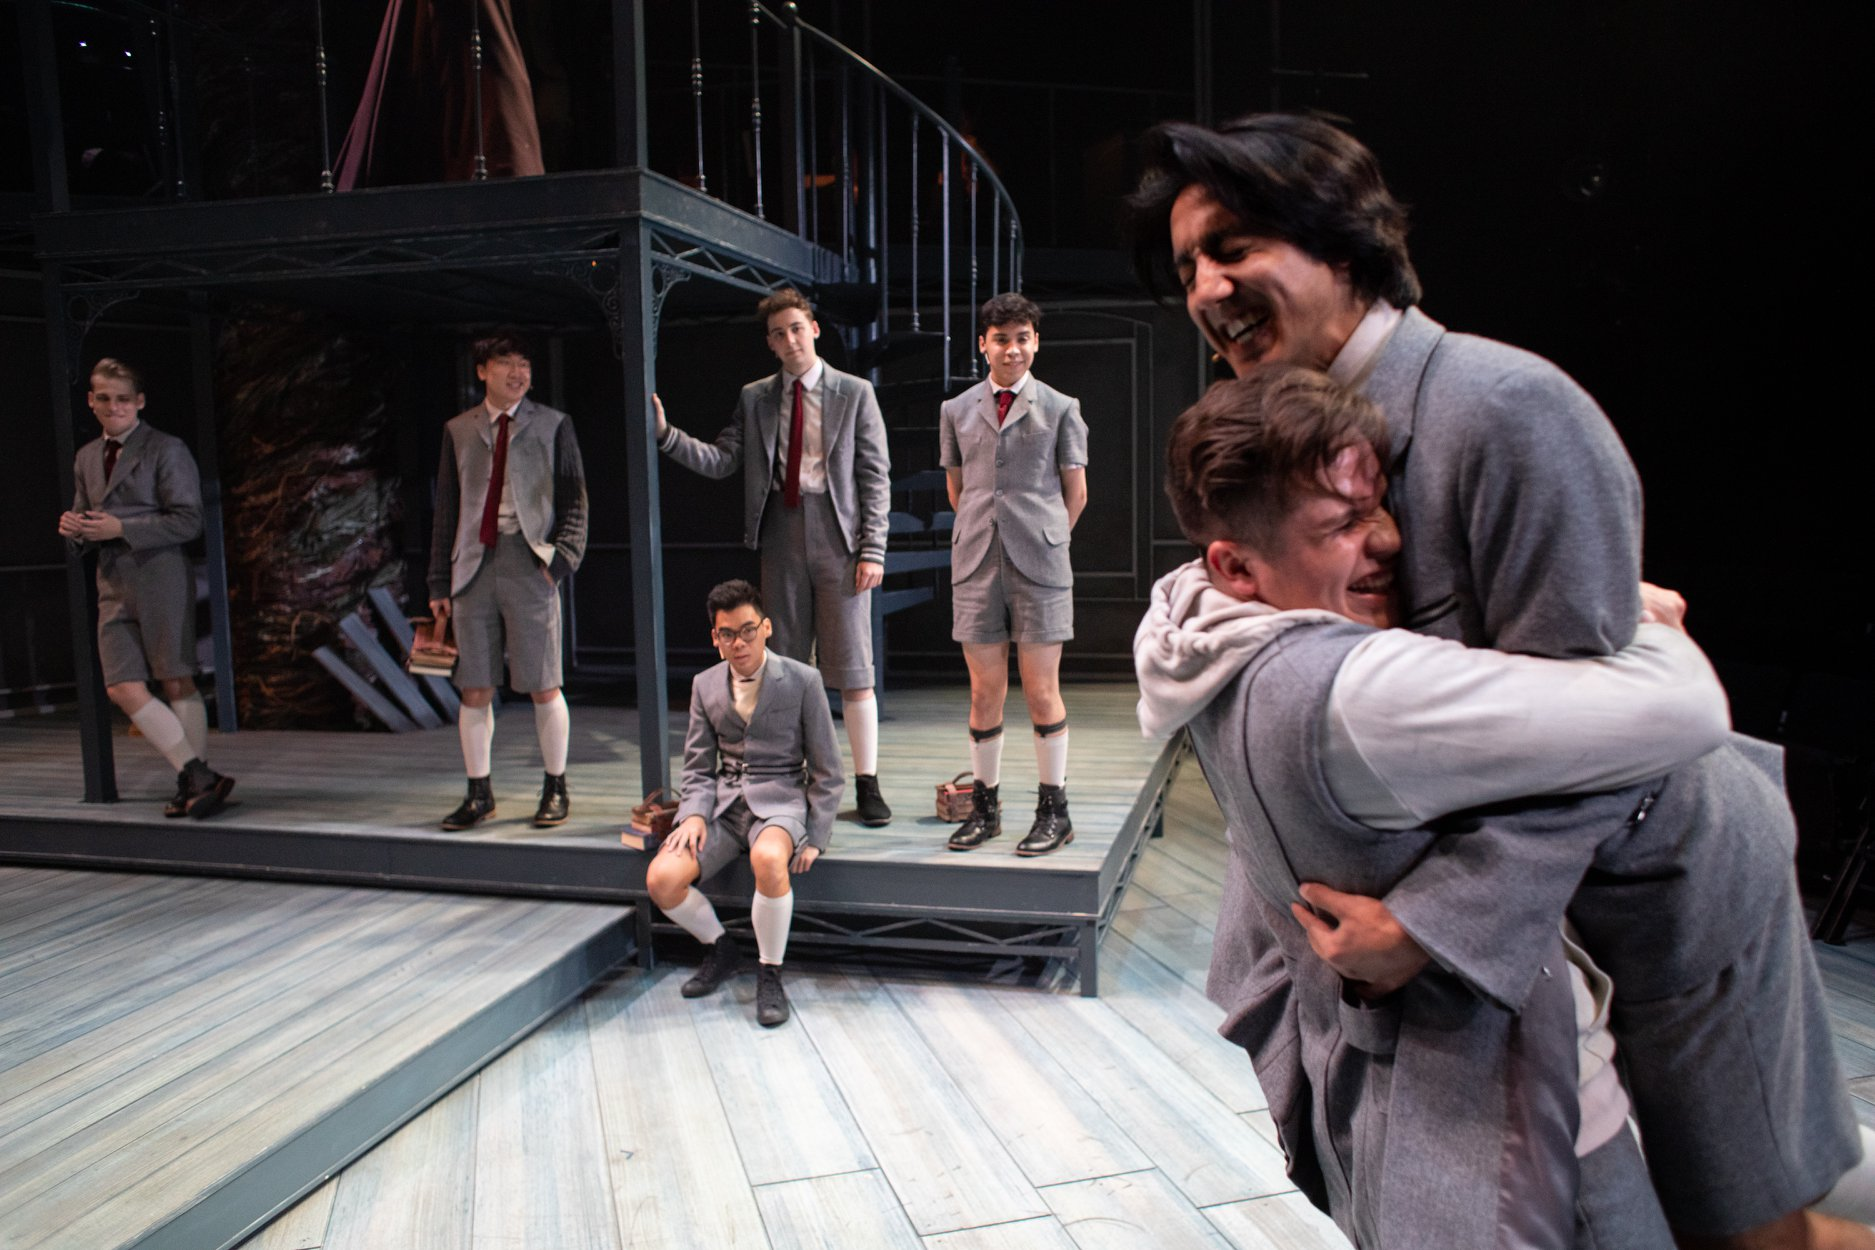 uploads/production_images/spring-awakening-ut-lawrence-peart-2019/ssa_04_lawrence_peart.jpg